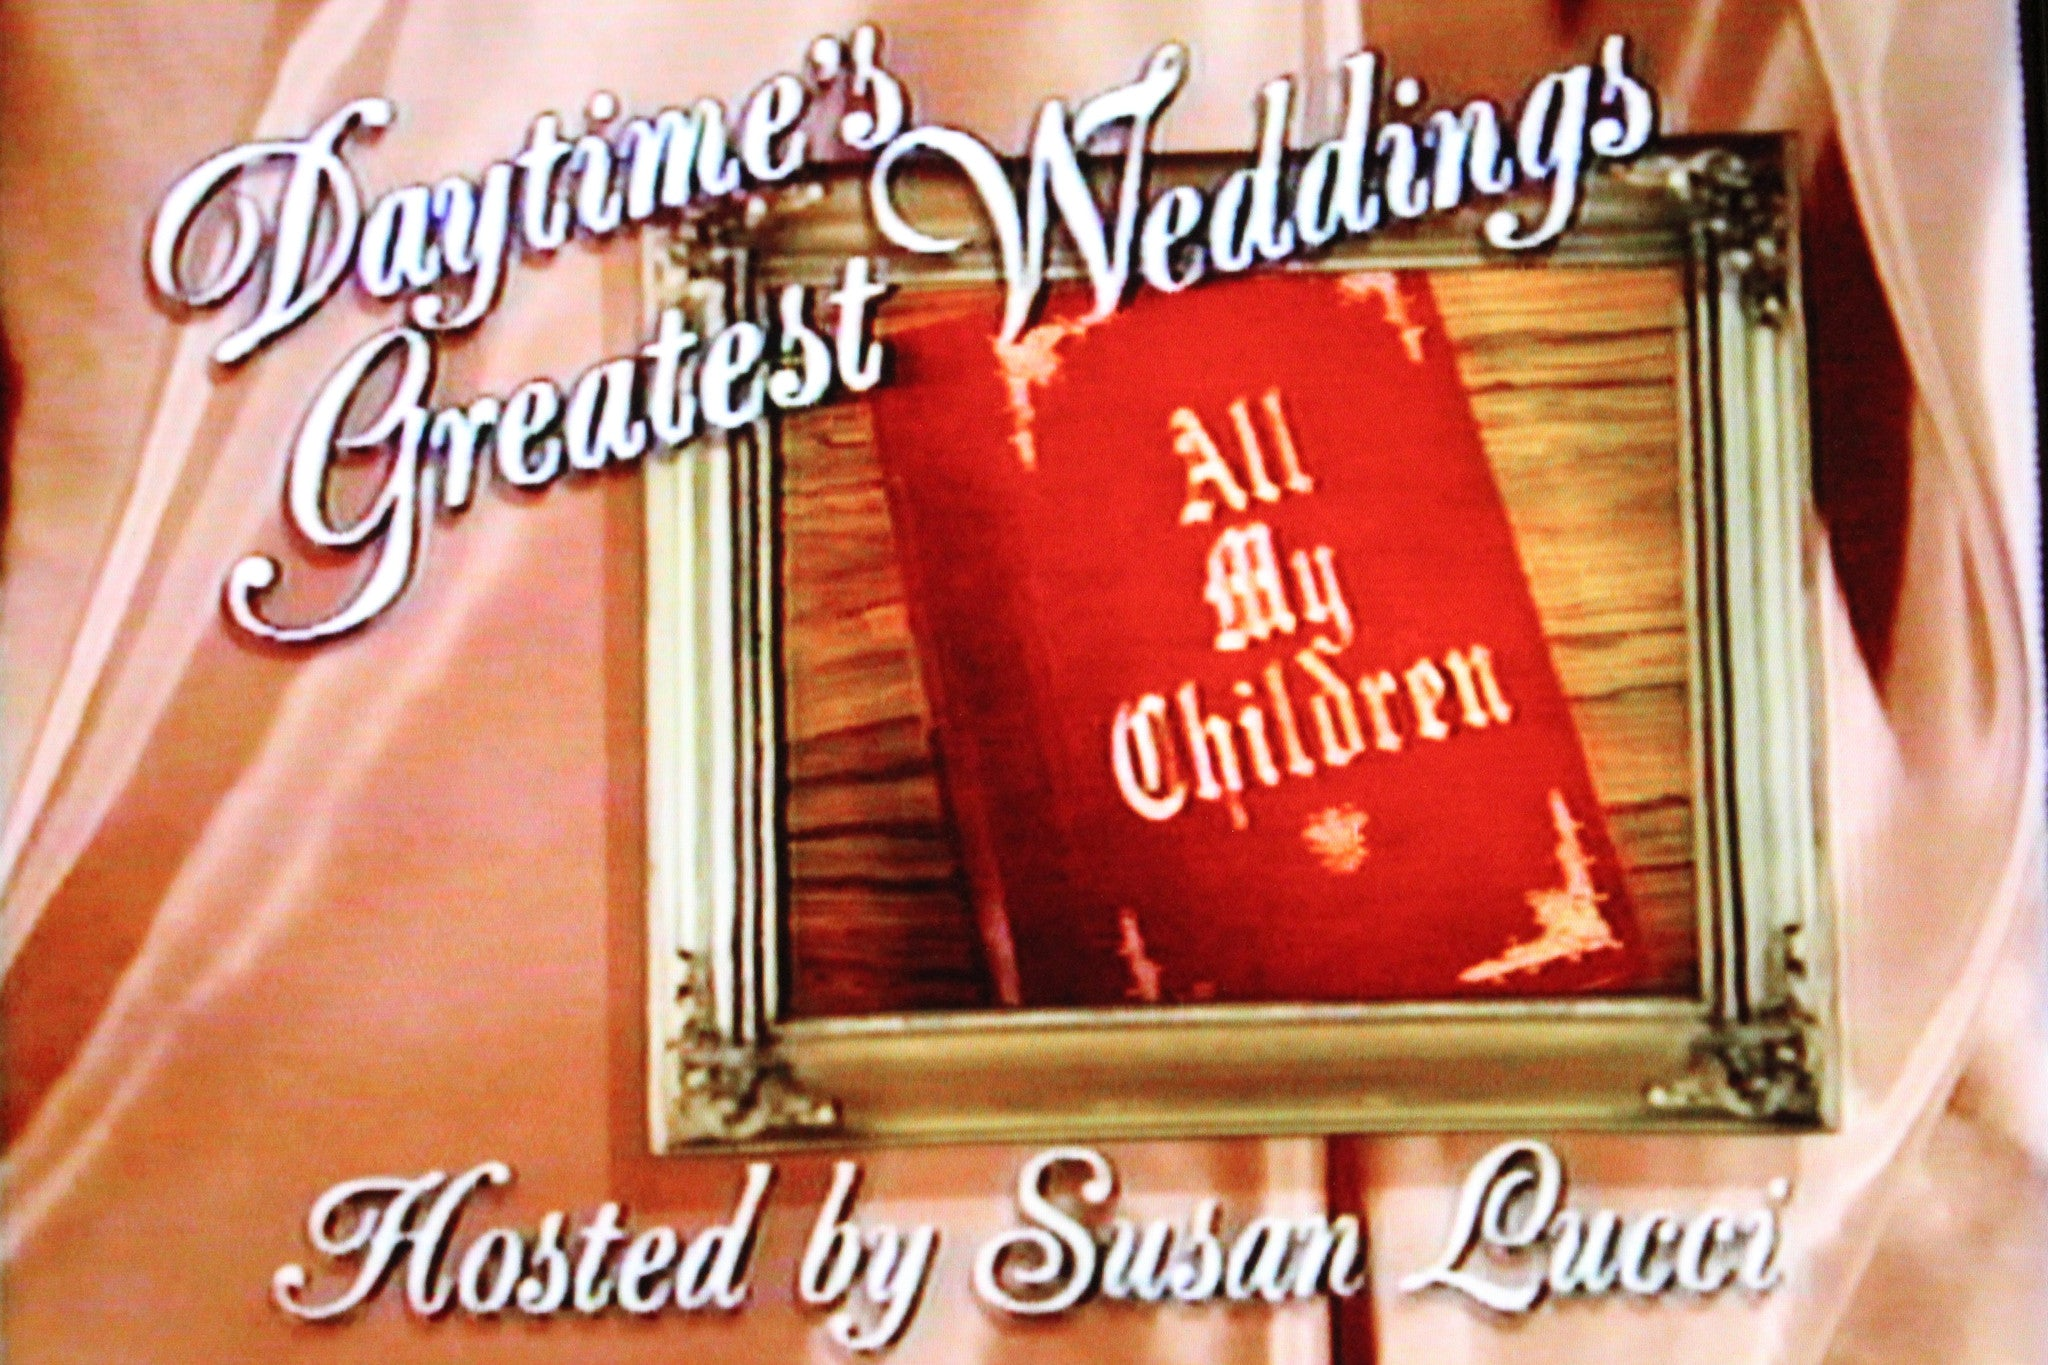 DAYTIME'S GREATEST WEDDINGS: ALL MY CHILDREN (ABC) - Rewatch Classic TV - 1